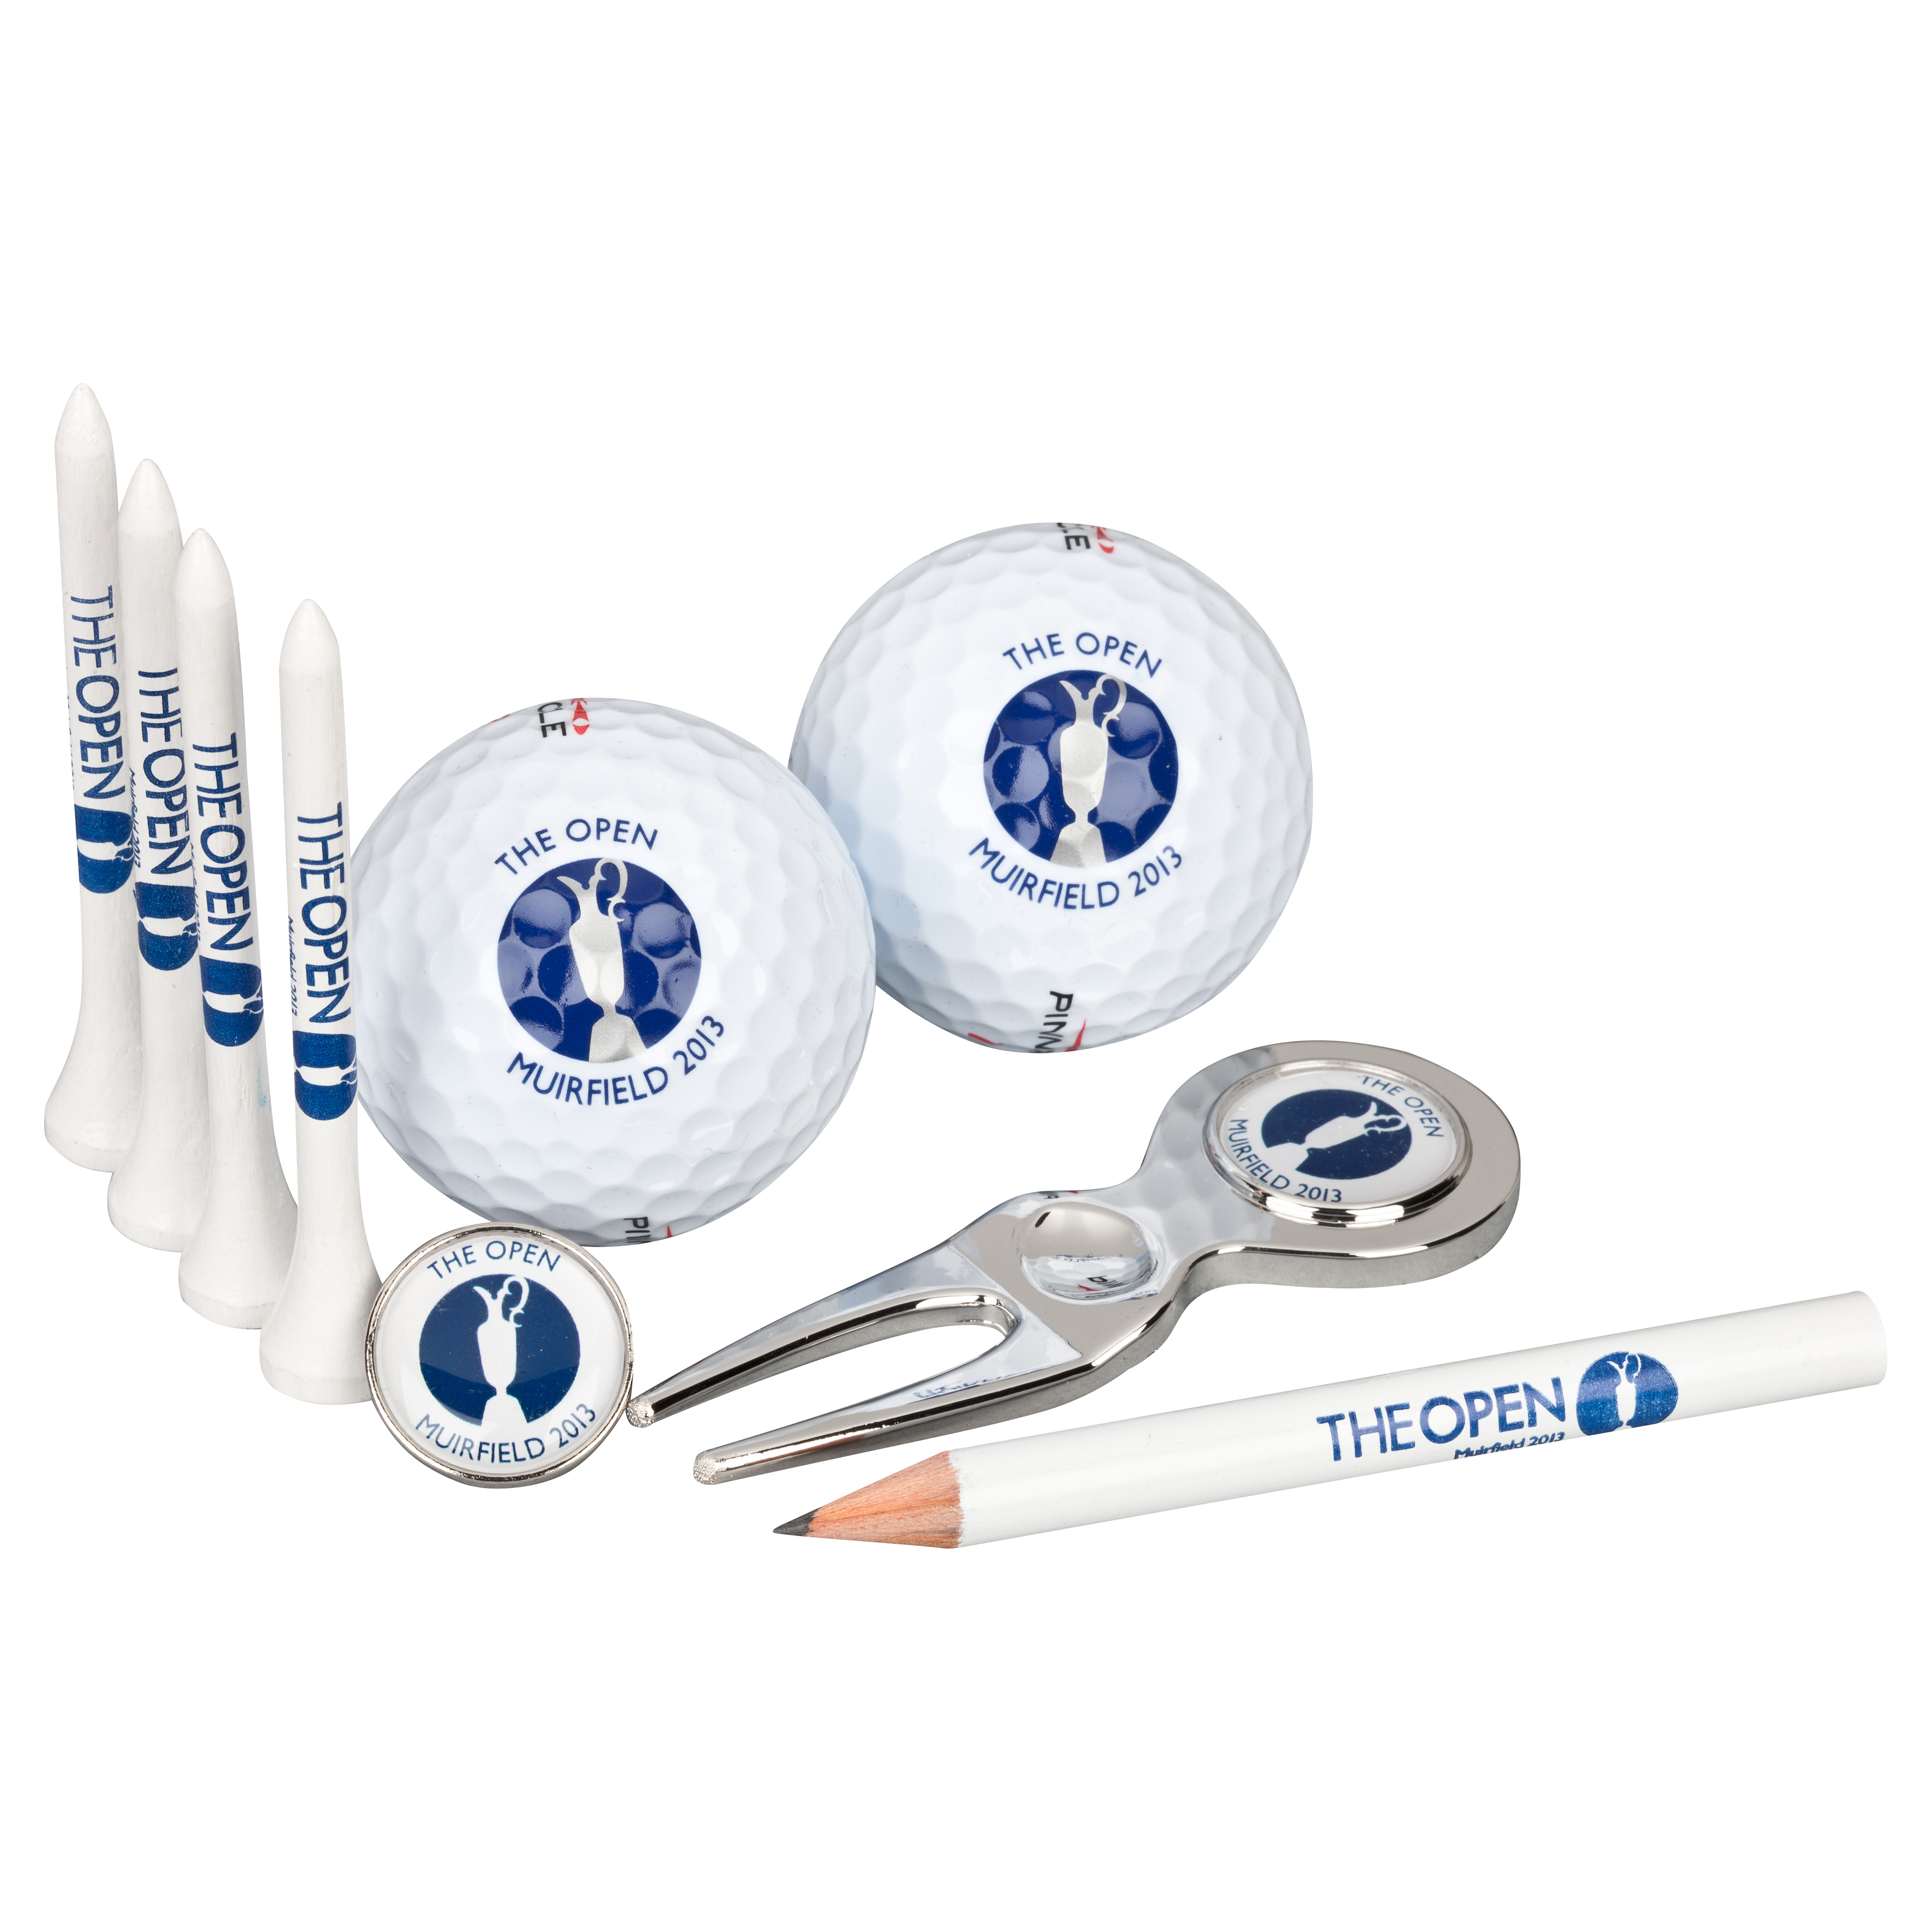 The Open Championship 2013 Muirfield Boxset 2 Pitchfork Ball Marker Tees Pencil & 2 Golf Balls